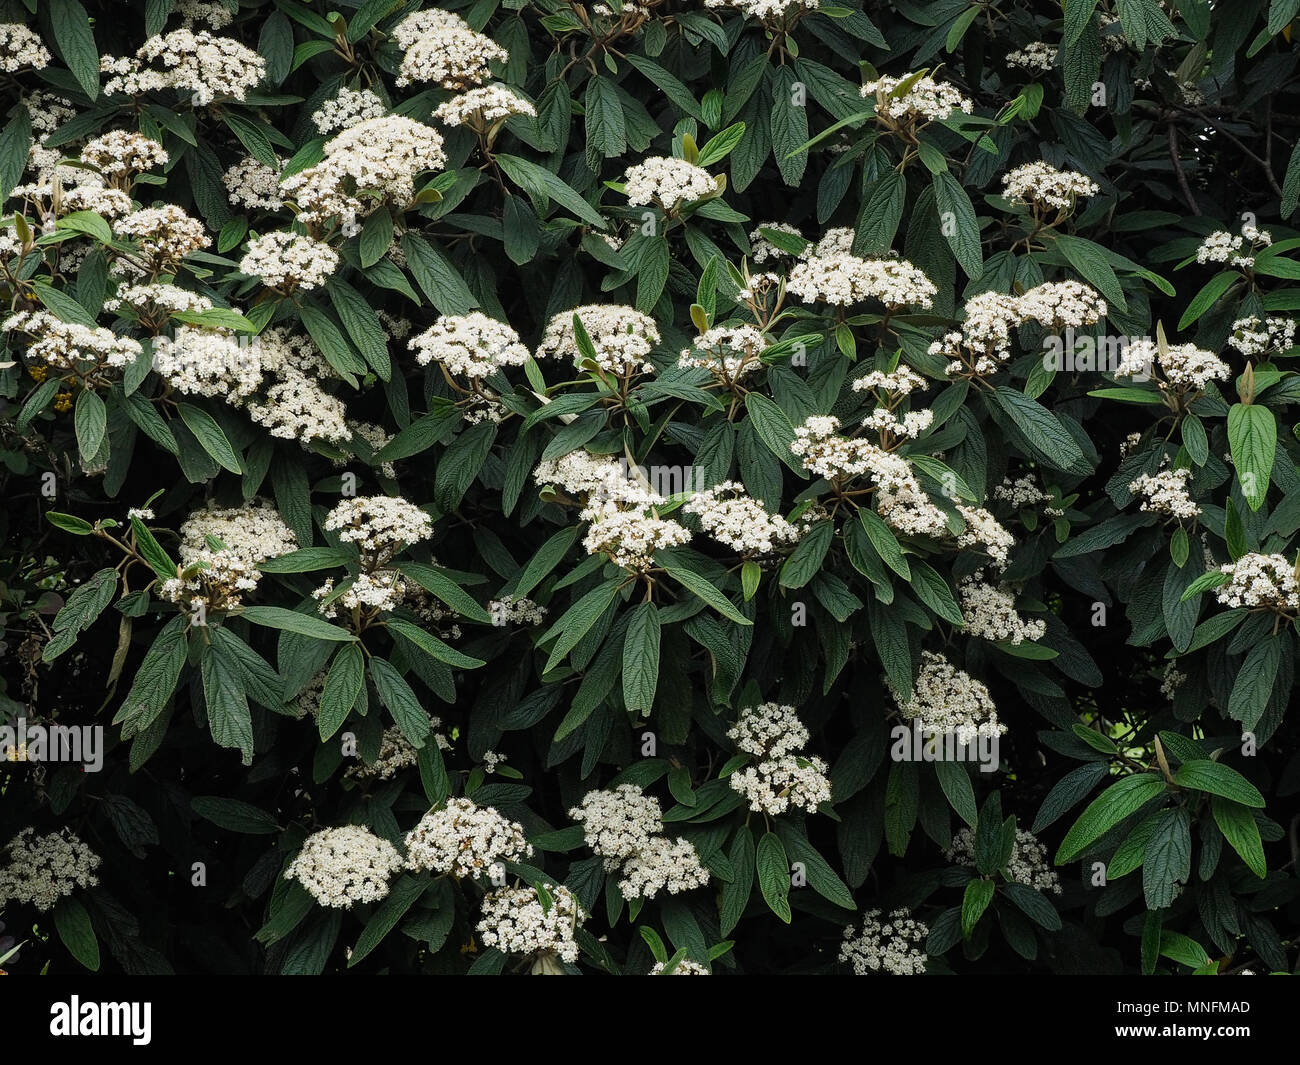 showing the white flowers and the deeply ribbed dark green foliage - Stock Image